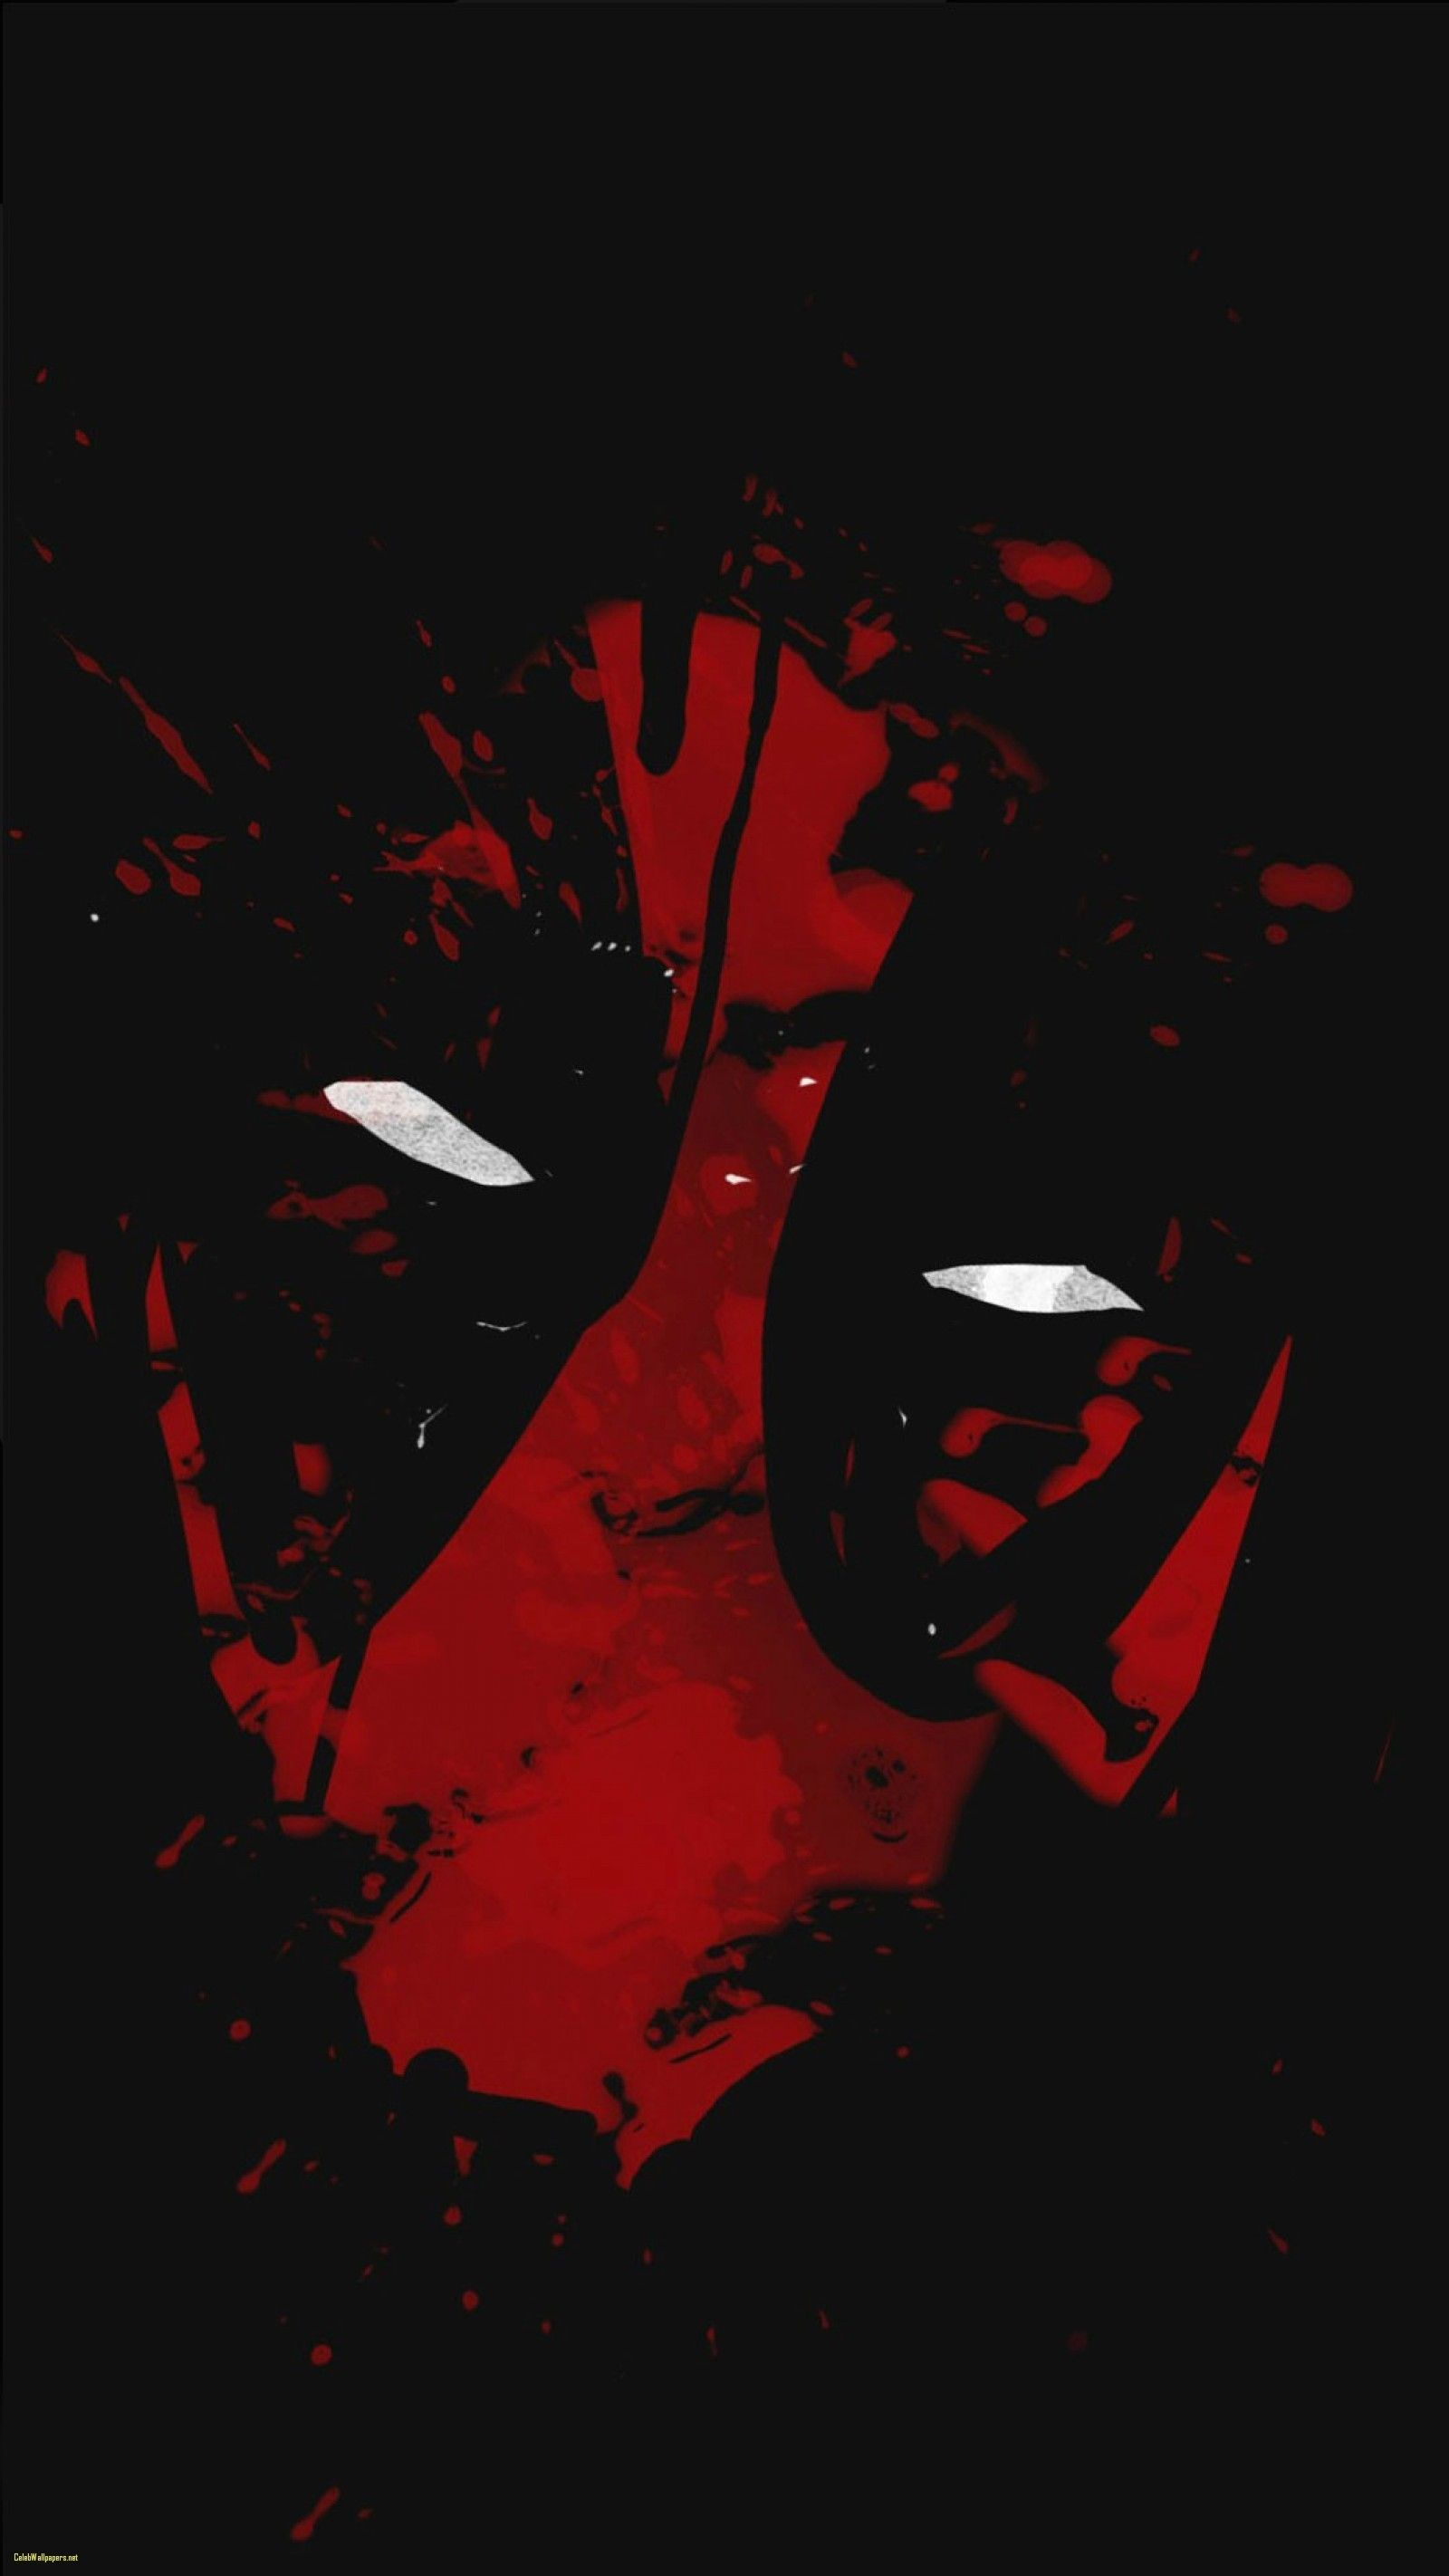 Android Full Hd Dark Black Wallpaper In 2020 Deadpool Wallpaper Iphone Deadpool Wallpaper Deadpool Wallpaper Backgrounds